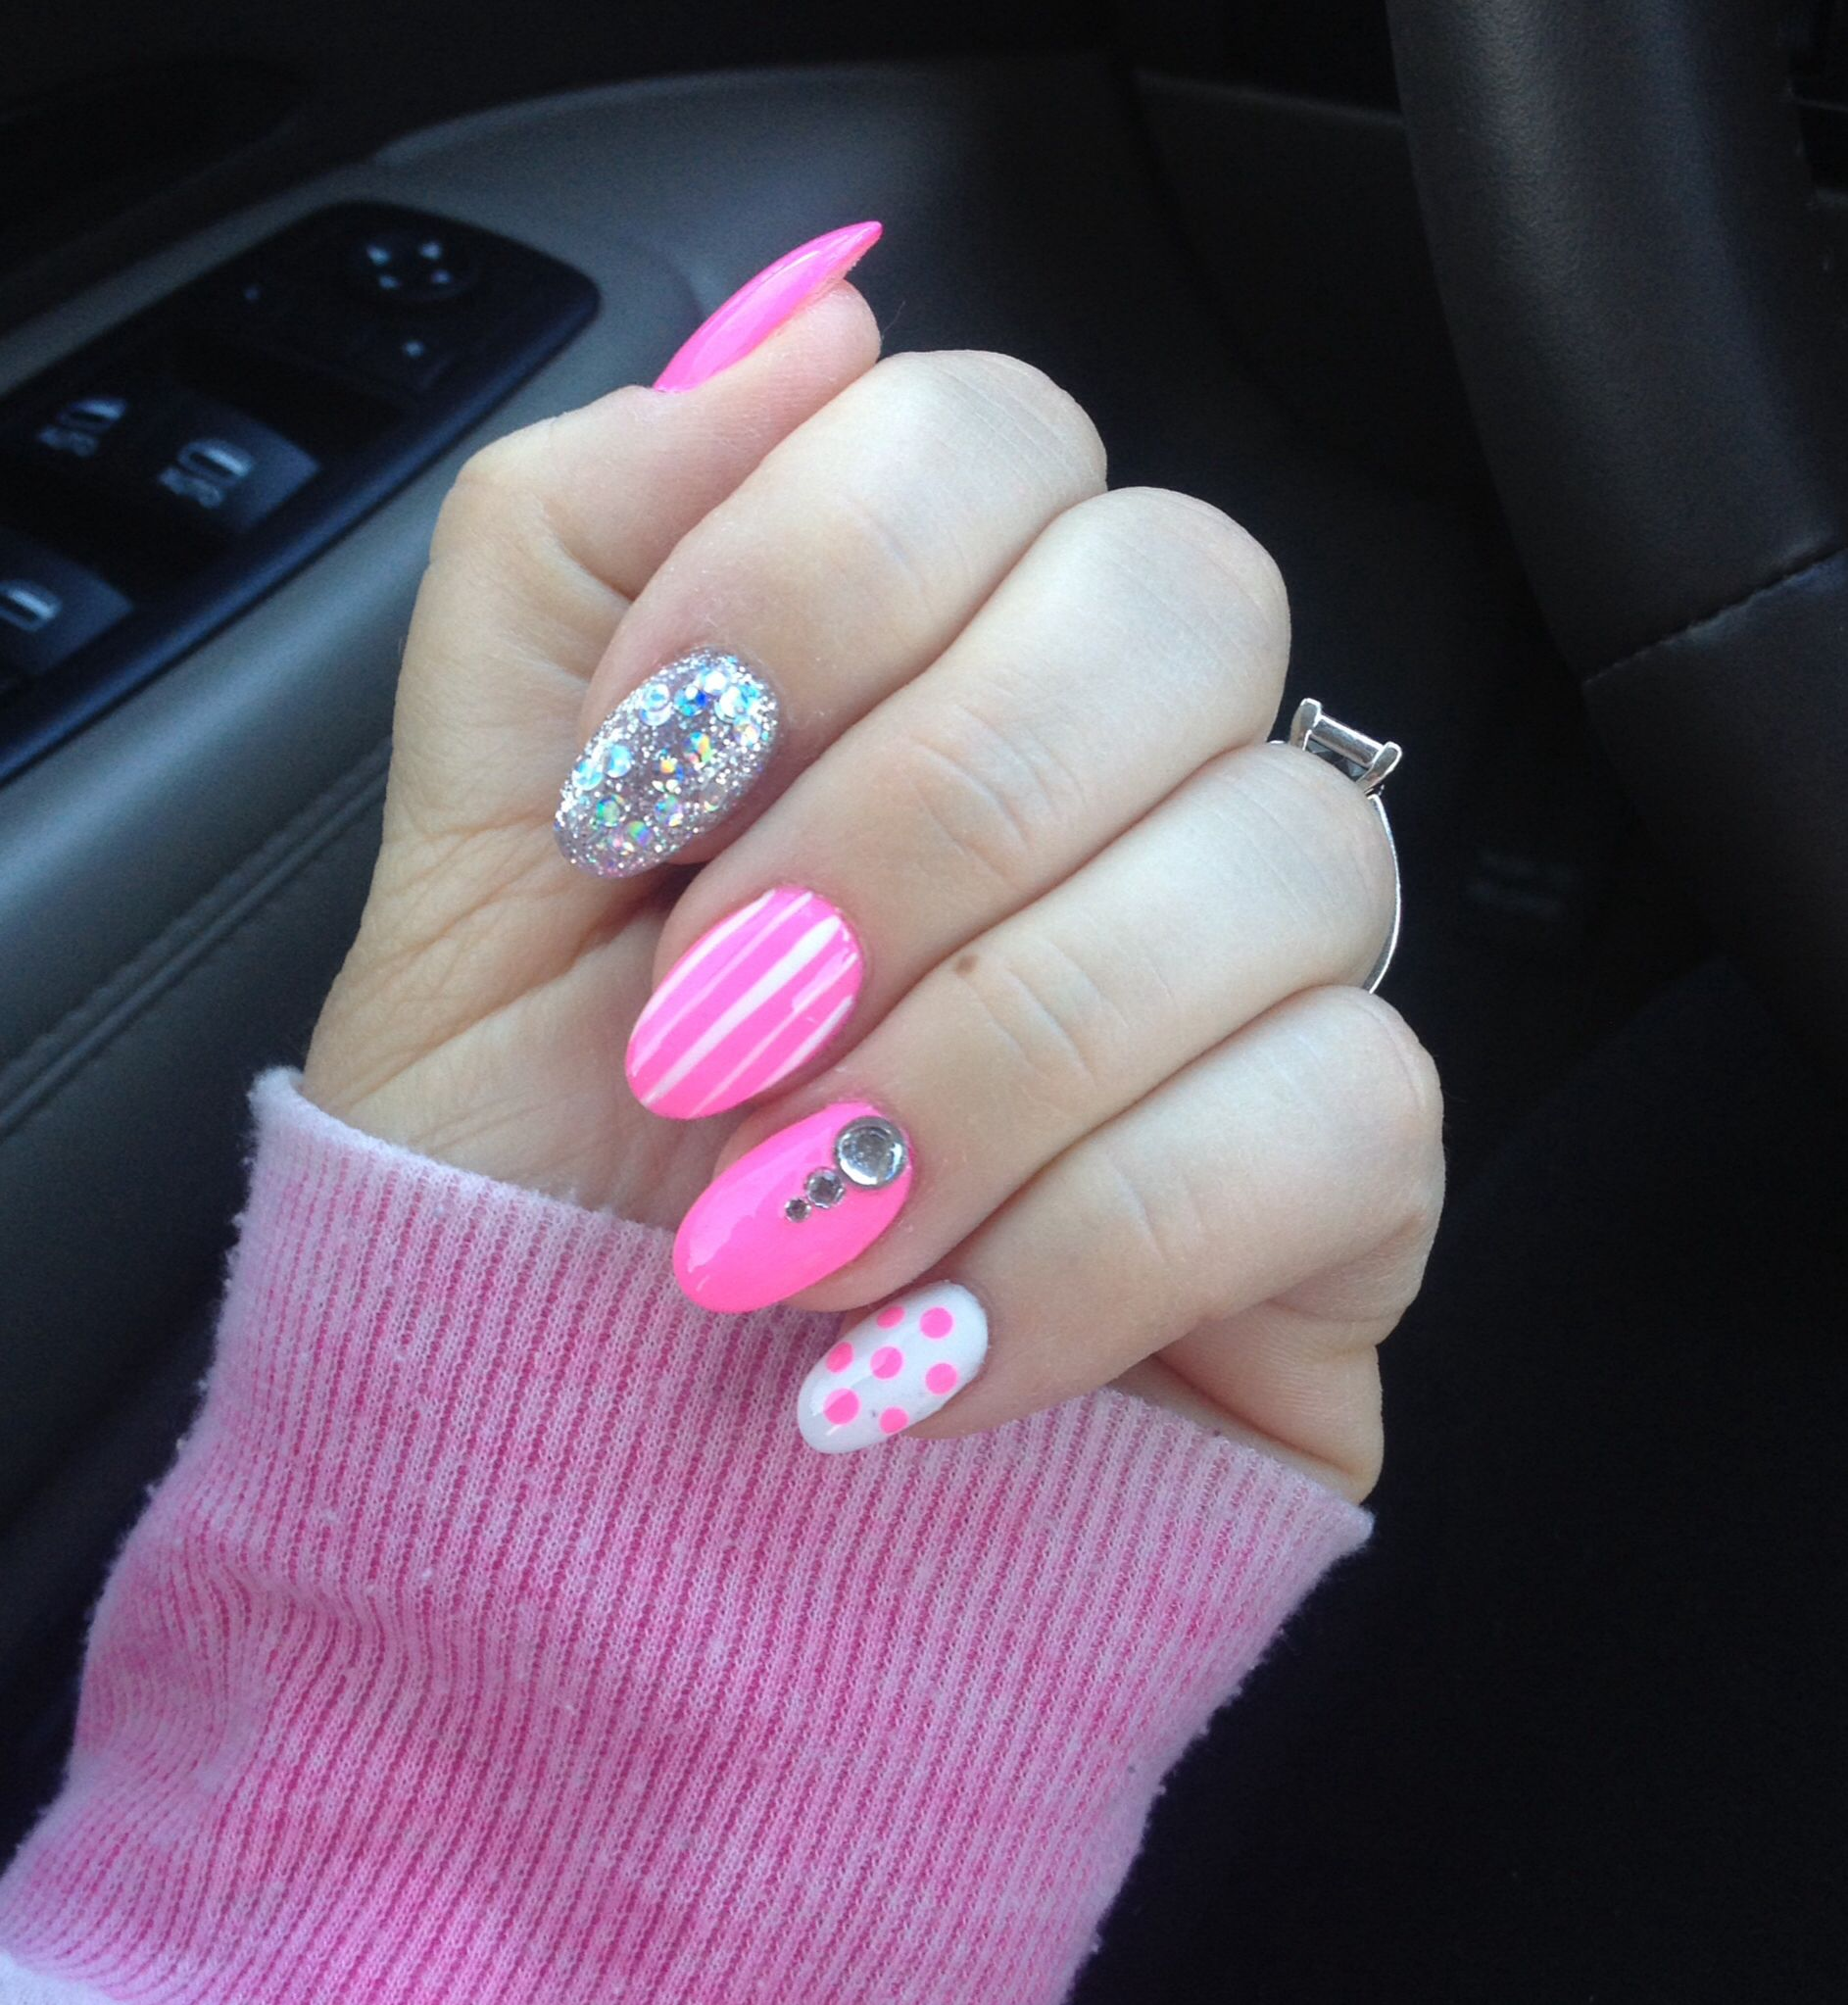 My Almond shape nails! | My Pinterest re-creations ...